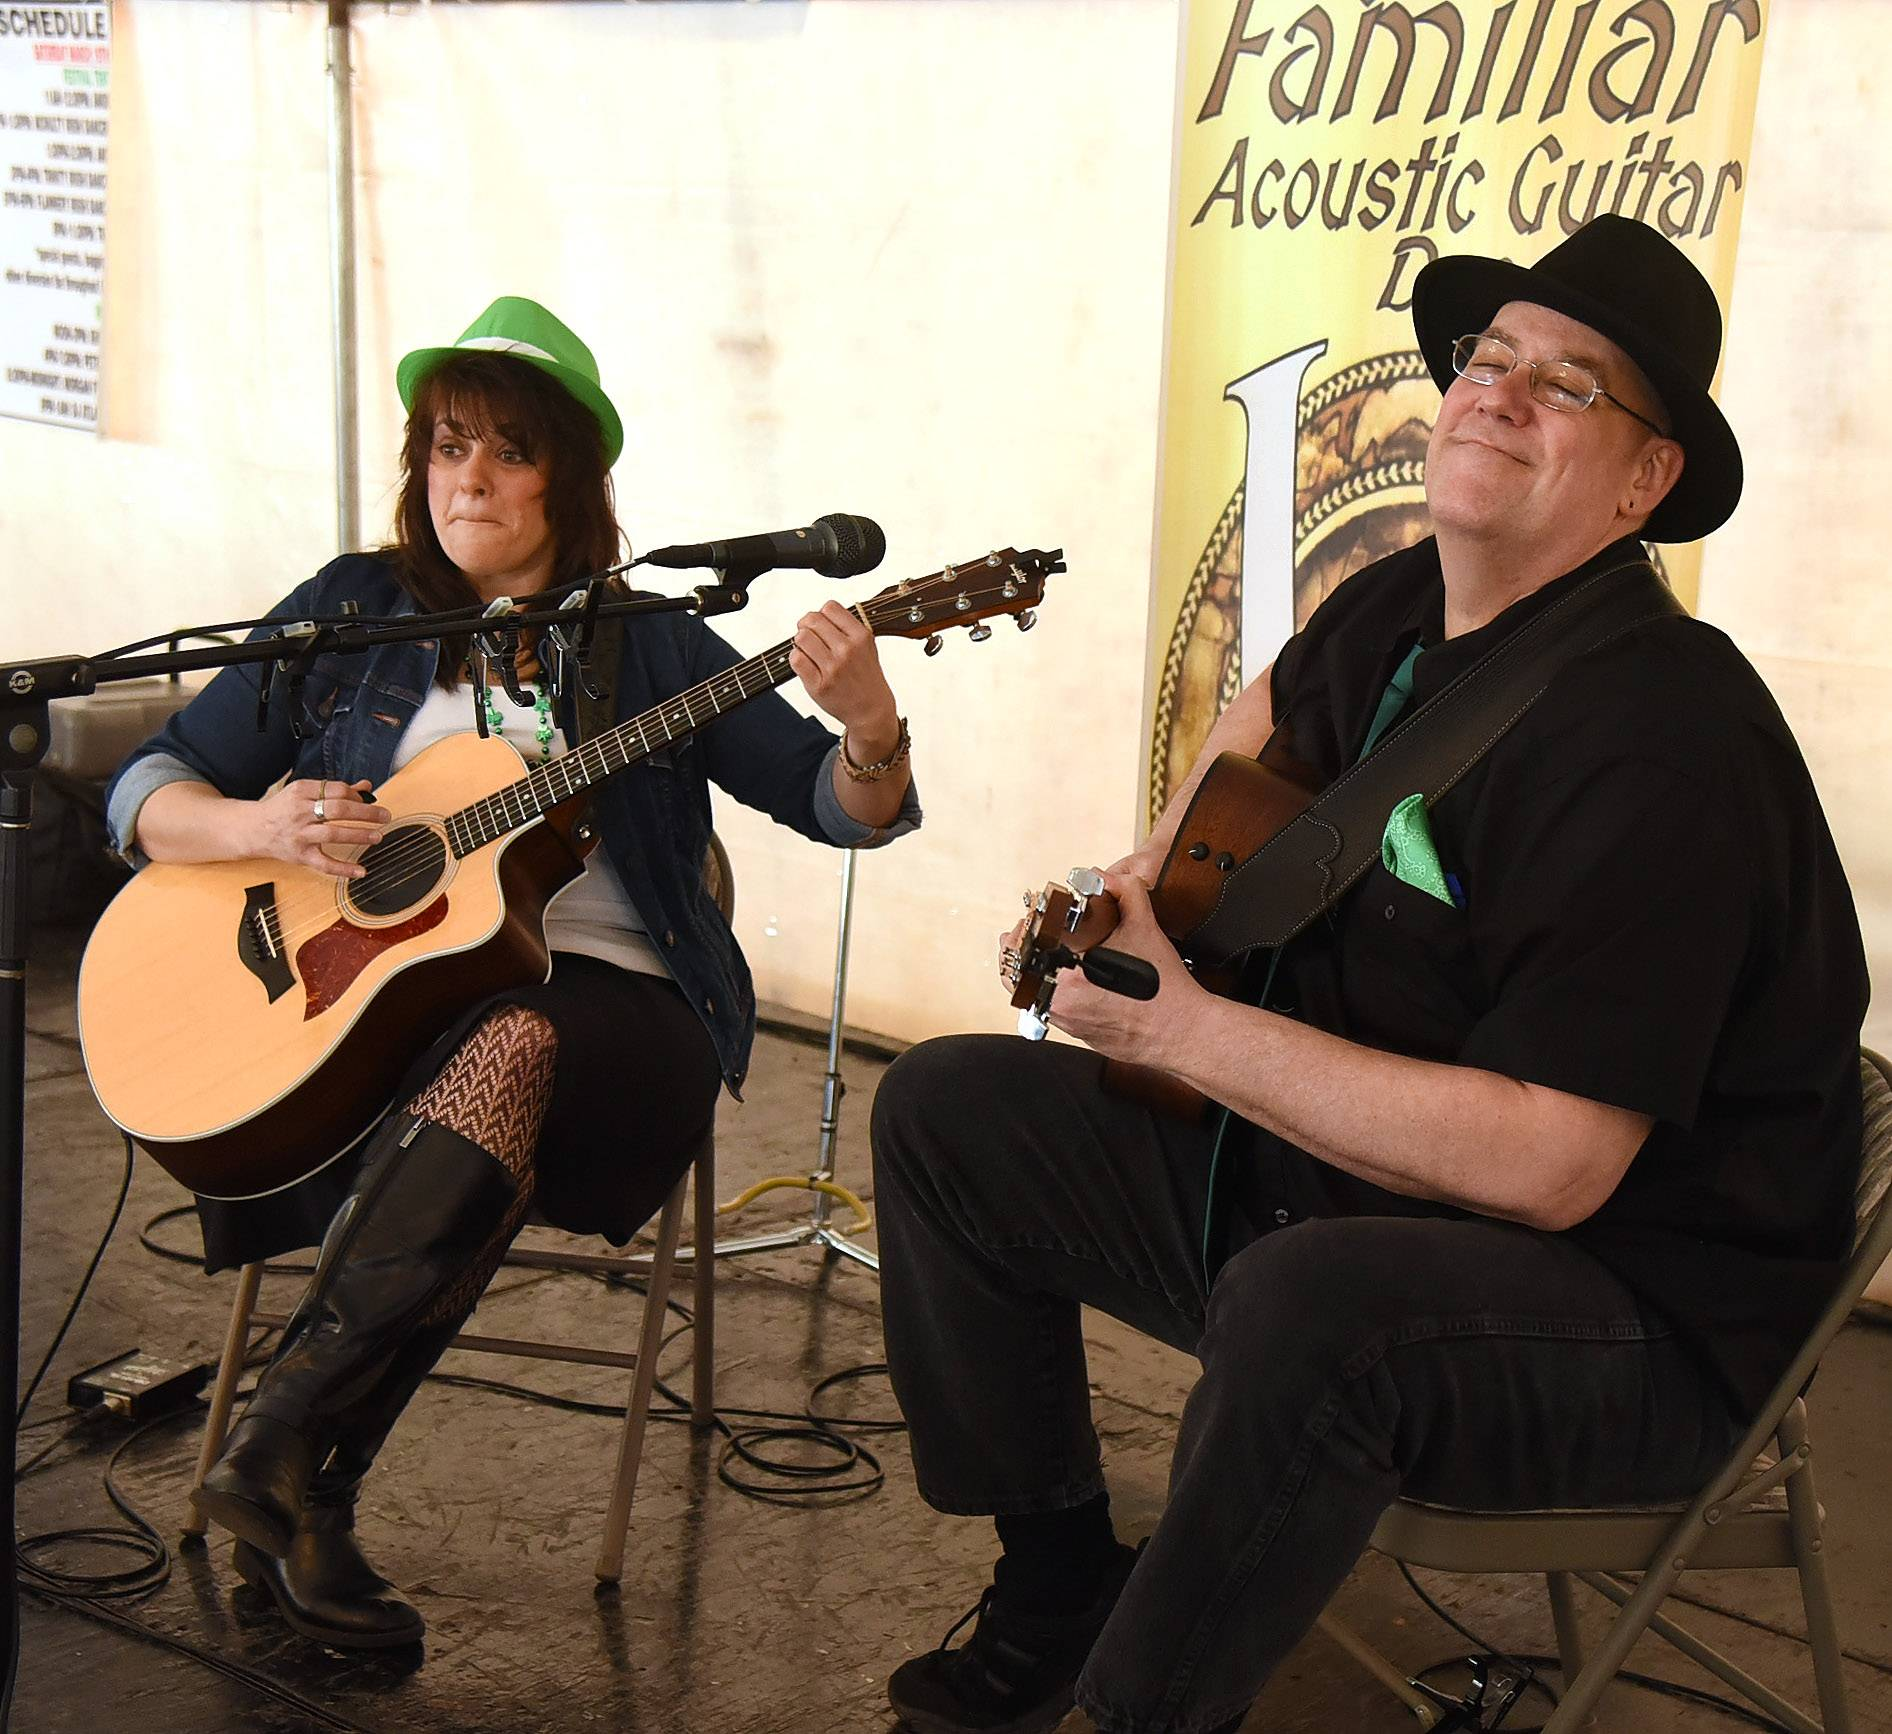 Tina Leontios of Carpentersville and Ted Hopf of Lake in the Hills perform as The Vaguely Familiar Acoustic Guitar Duo during opening day of the 2016 Barrington Celtic Fest. They'll be back this year.